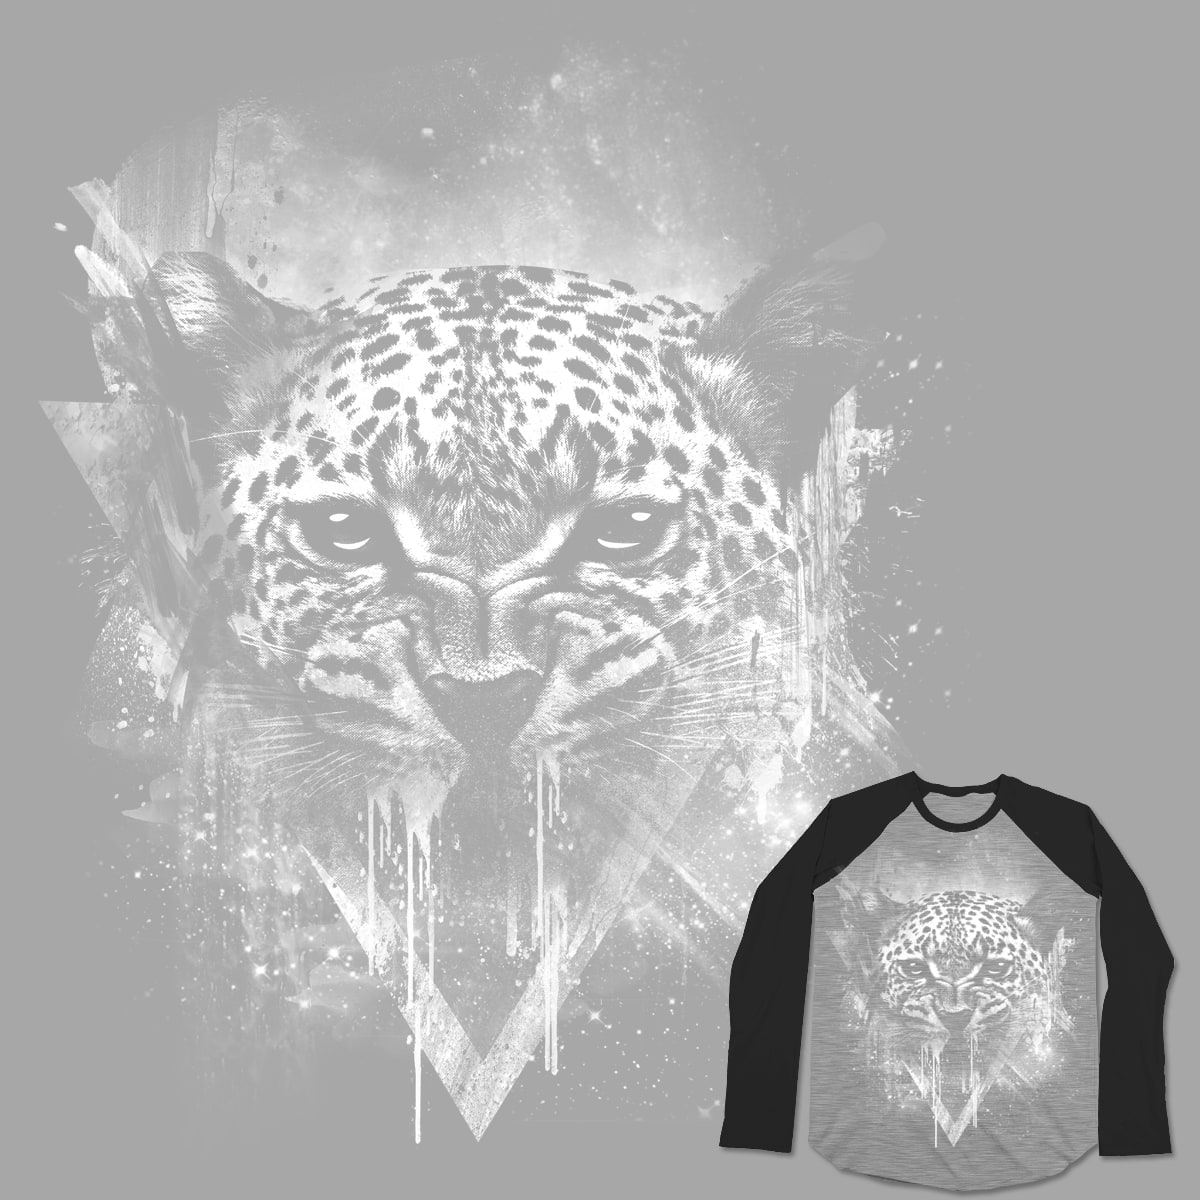 Wild Inside by dandingeroz on Threadless